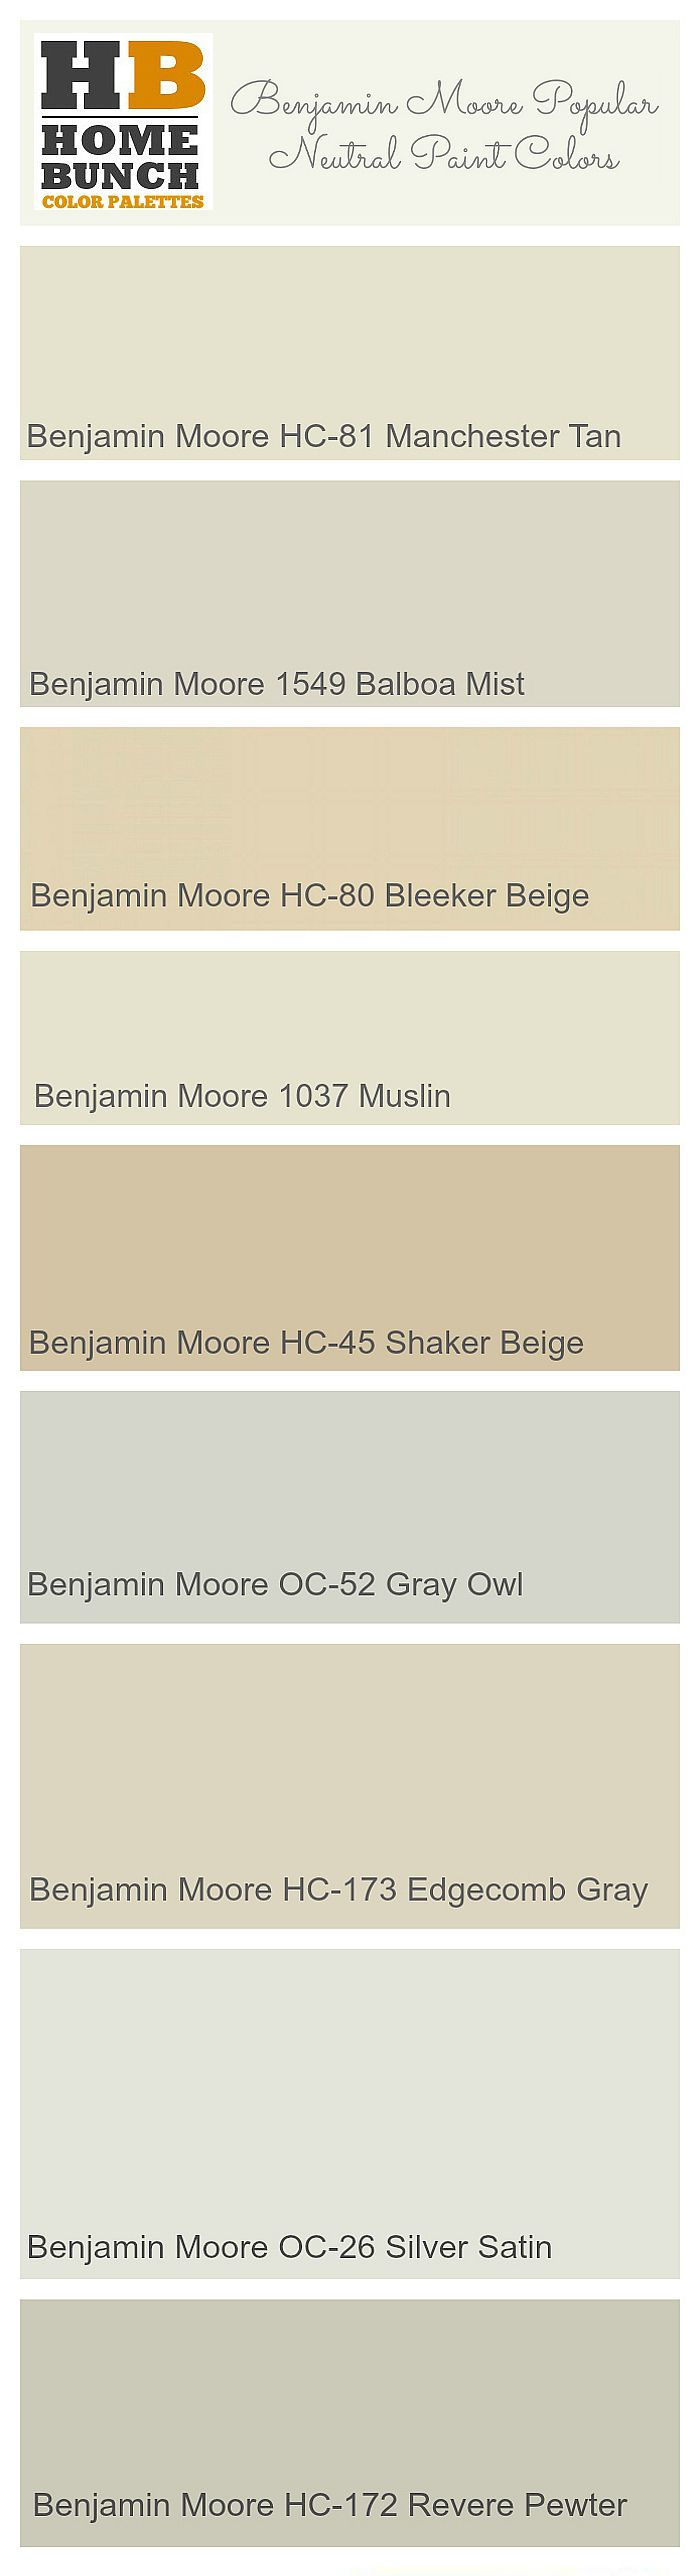 Benjamin moore popular neutral paint colors manchester - Benjamin moore gray mist exterior ...